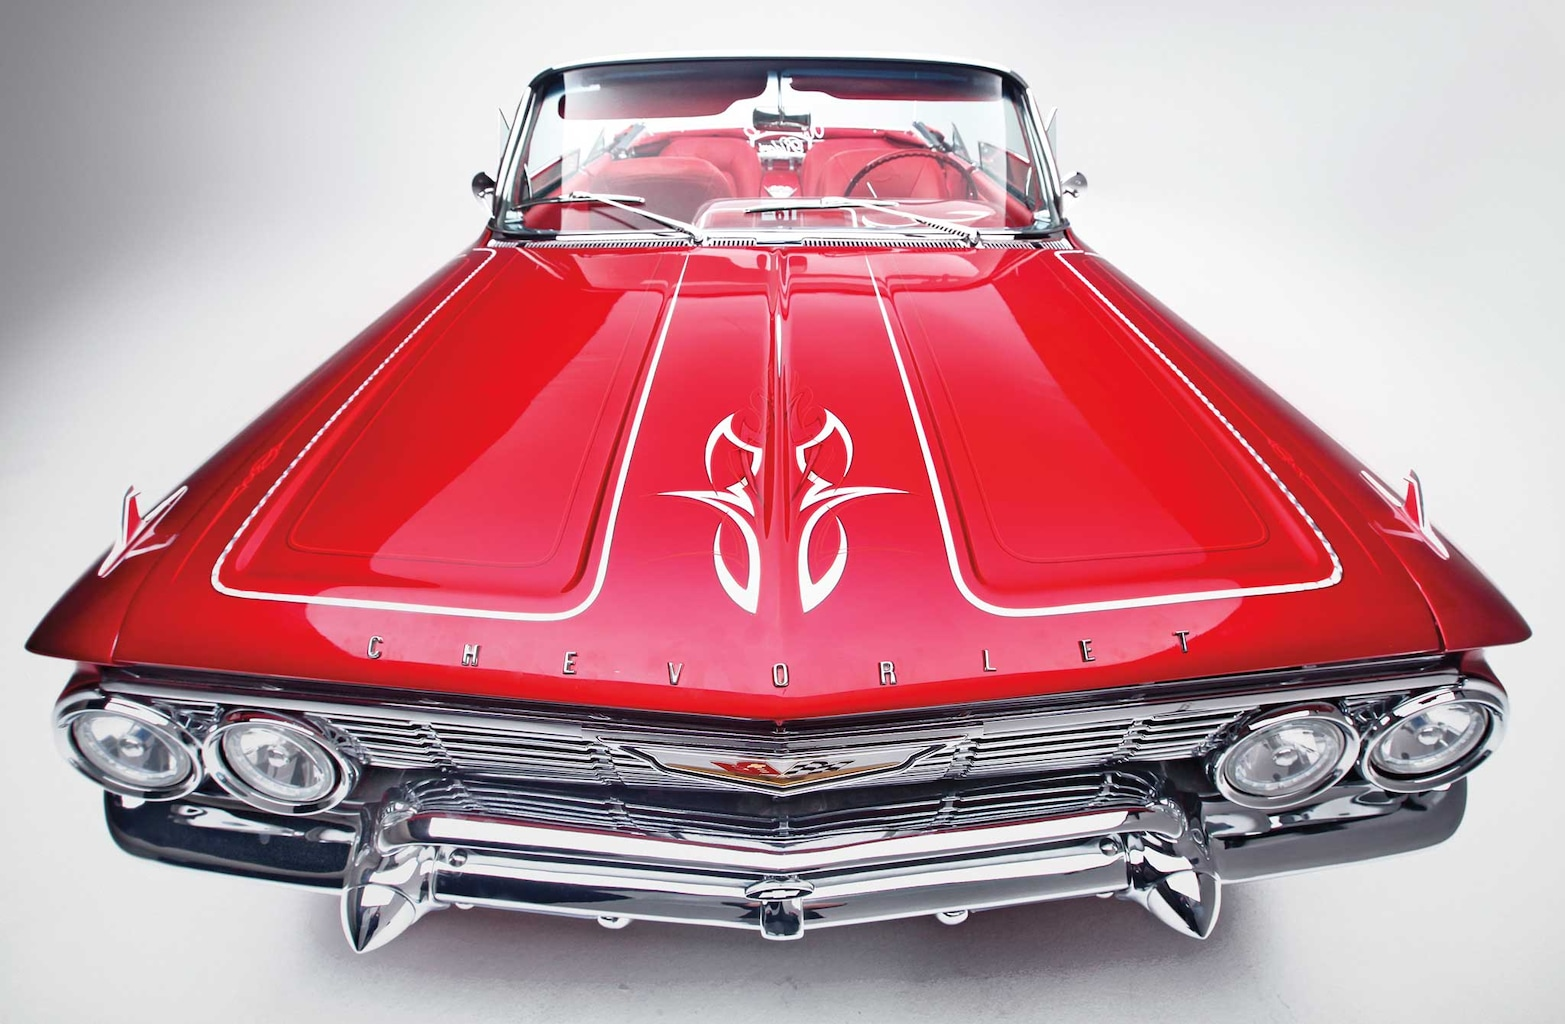 001 1961 chevrolet impala convertible front grille